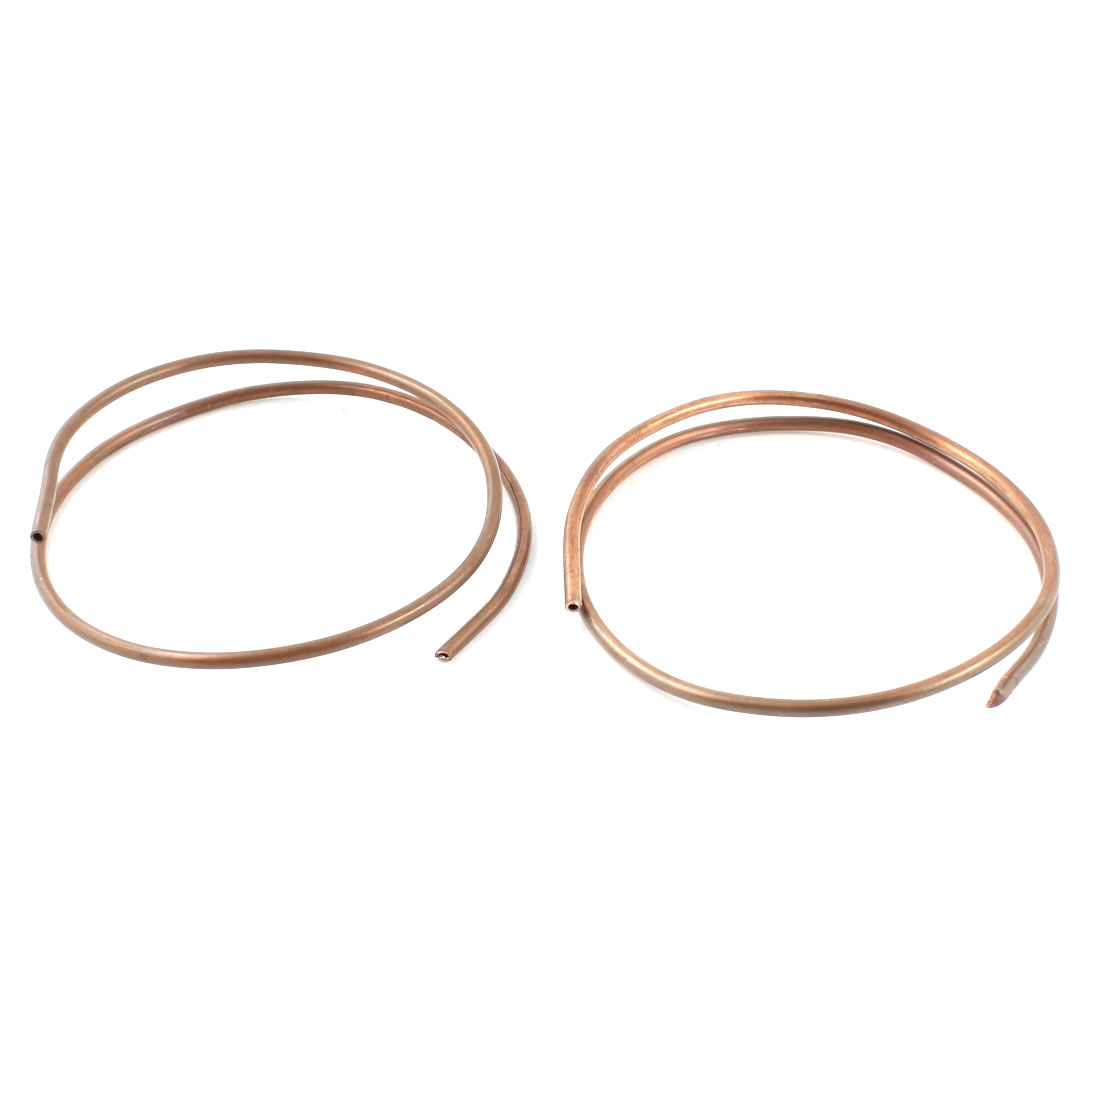 2Pcs Copper Tone Refrigerator Refrigeration Tubing Coil 3.0mm Dia 40cm Length